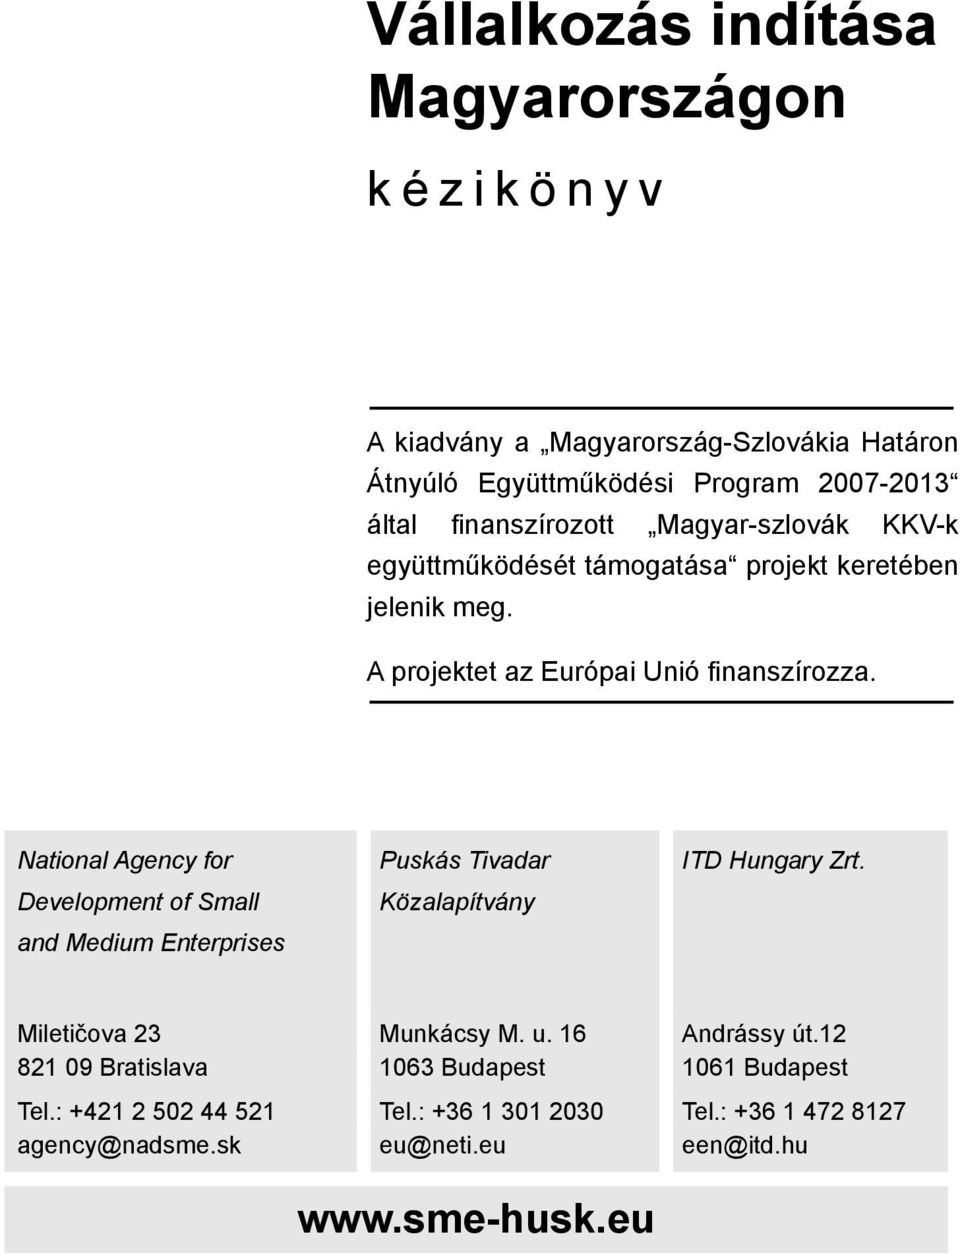 National Agency for Development of Small and Medium Enterprises Puskás Tivadar Közalapítvány ITD Hungary Zrt. Miletičova 23 Munkácsy M. u.